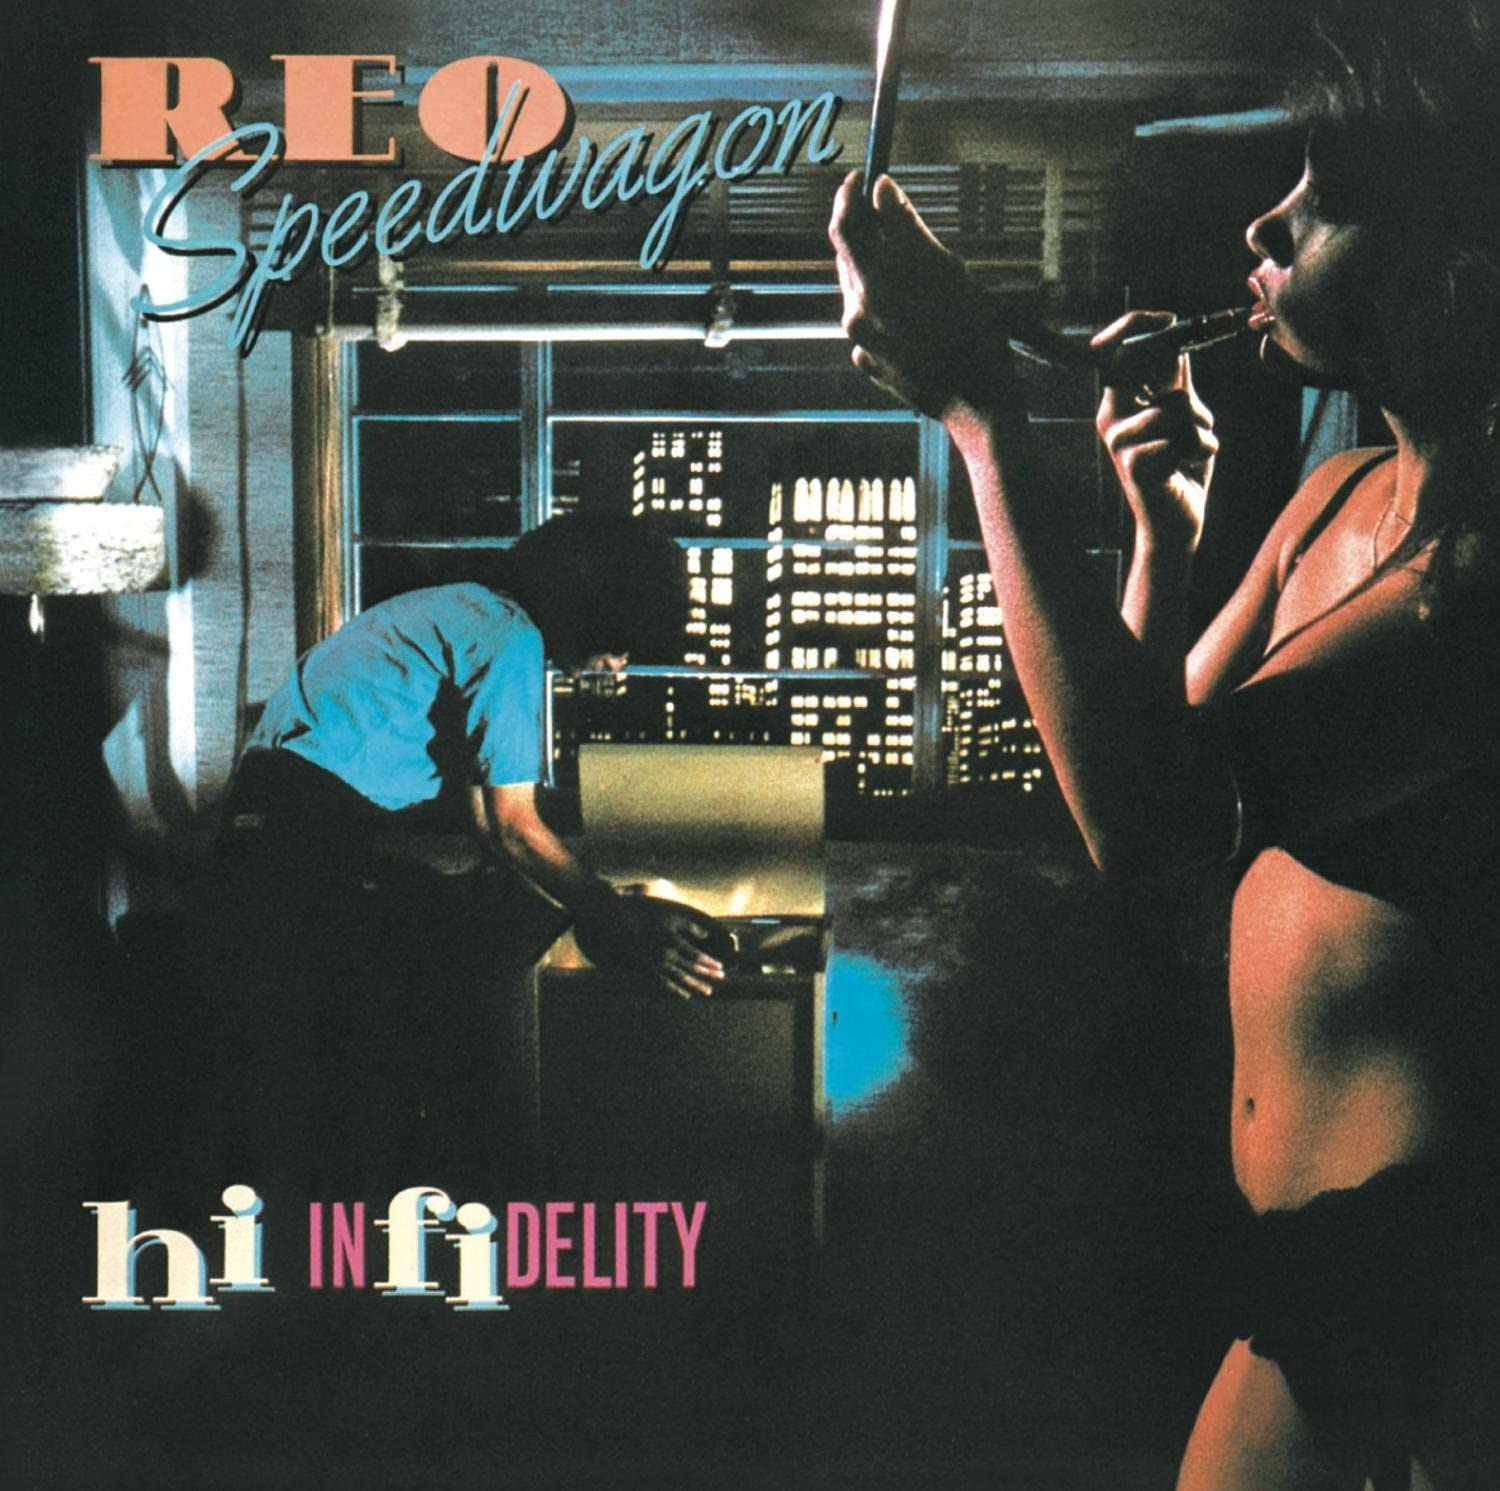 REO Speedwagon - Hi Infidelity (30Th Anniversary Edition) - Gears For Ears